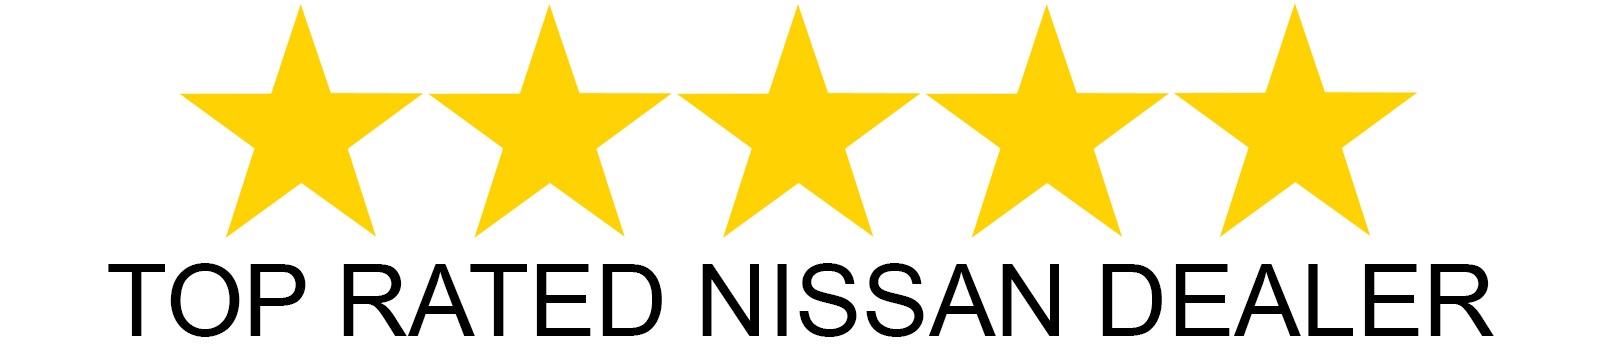 Star Nissan Top Rated Nissan Dealer